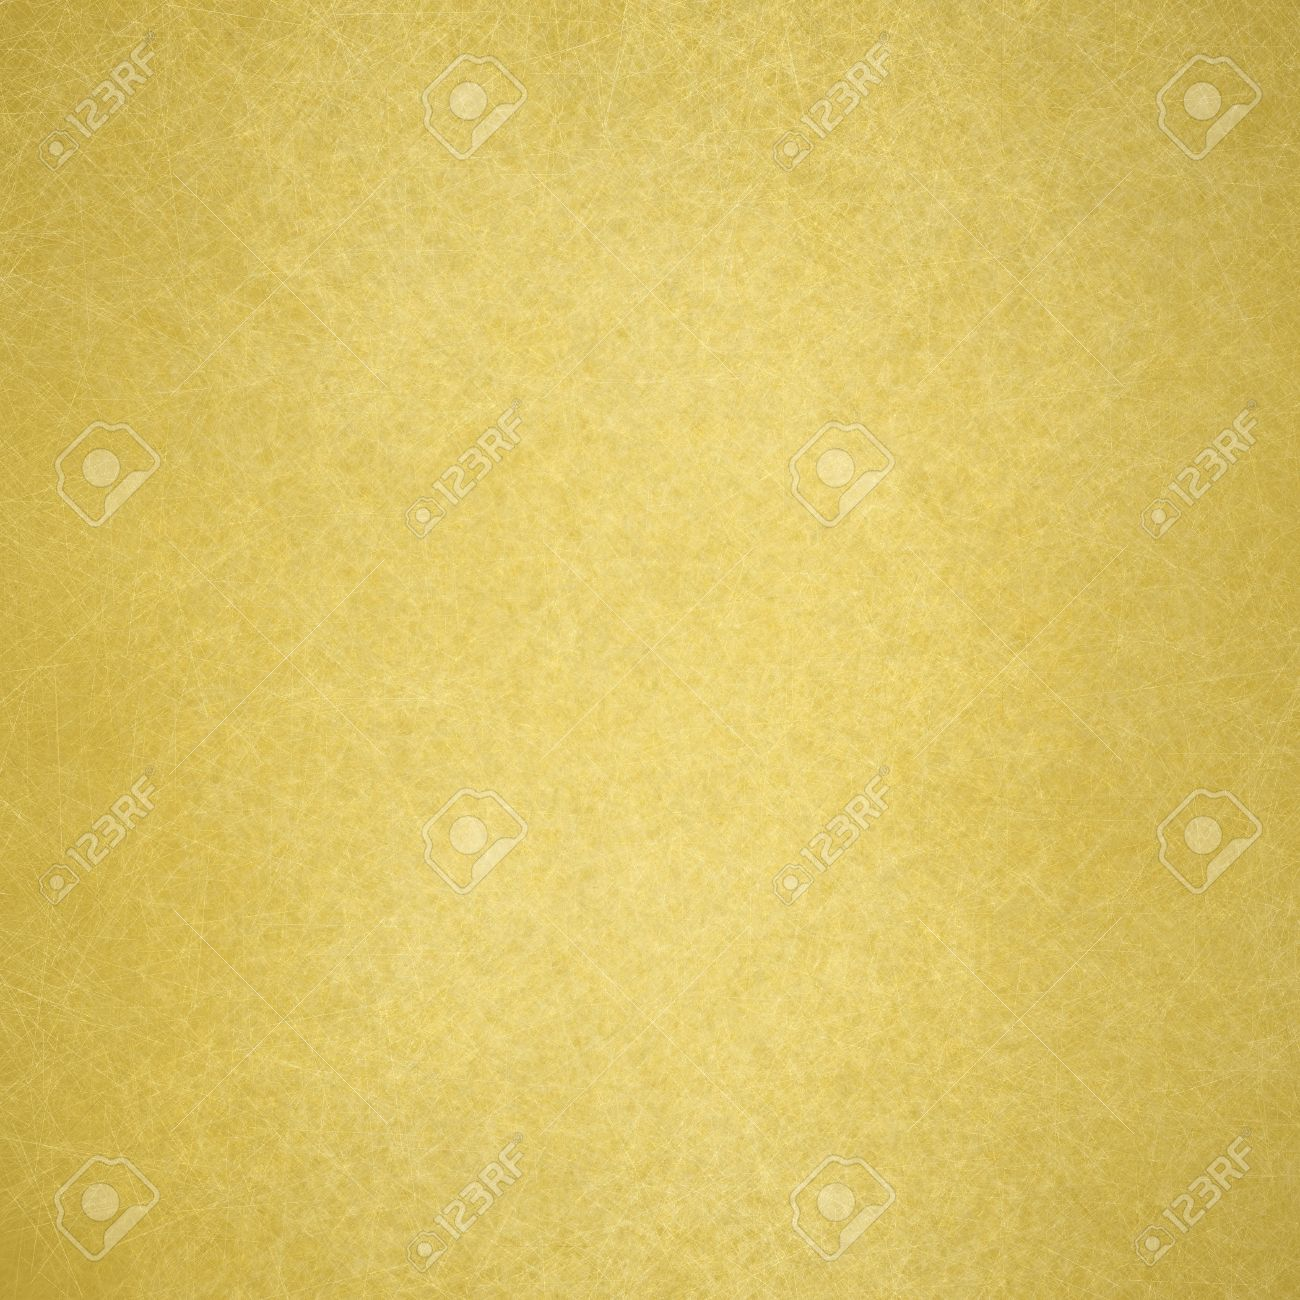 Gold Background Poster, Texture Is Old Vintage Distressed Solid ...